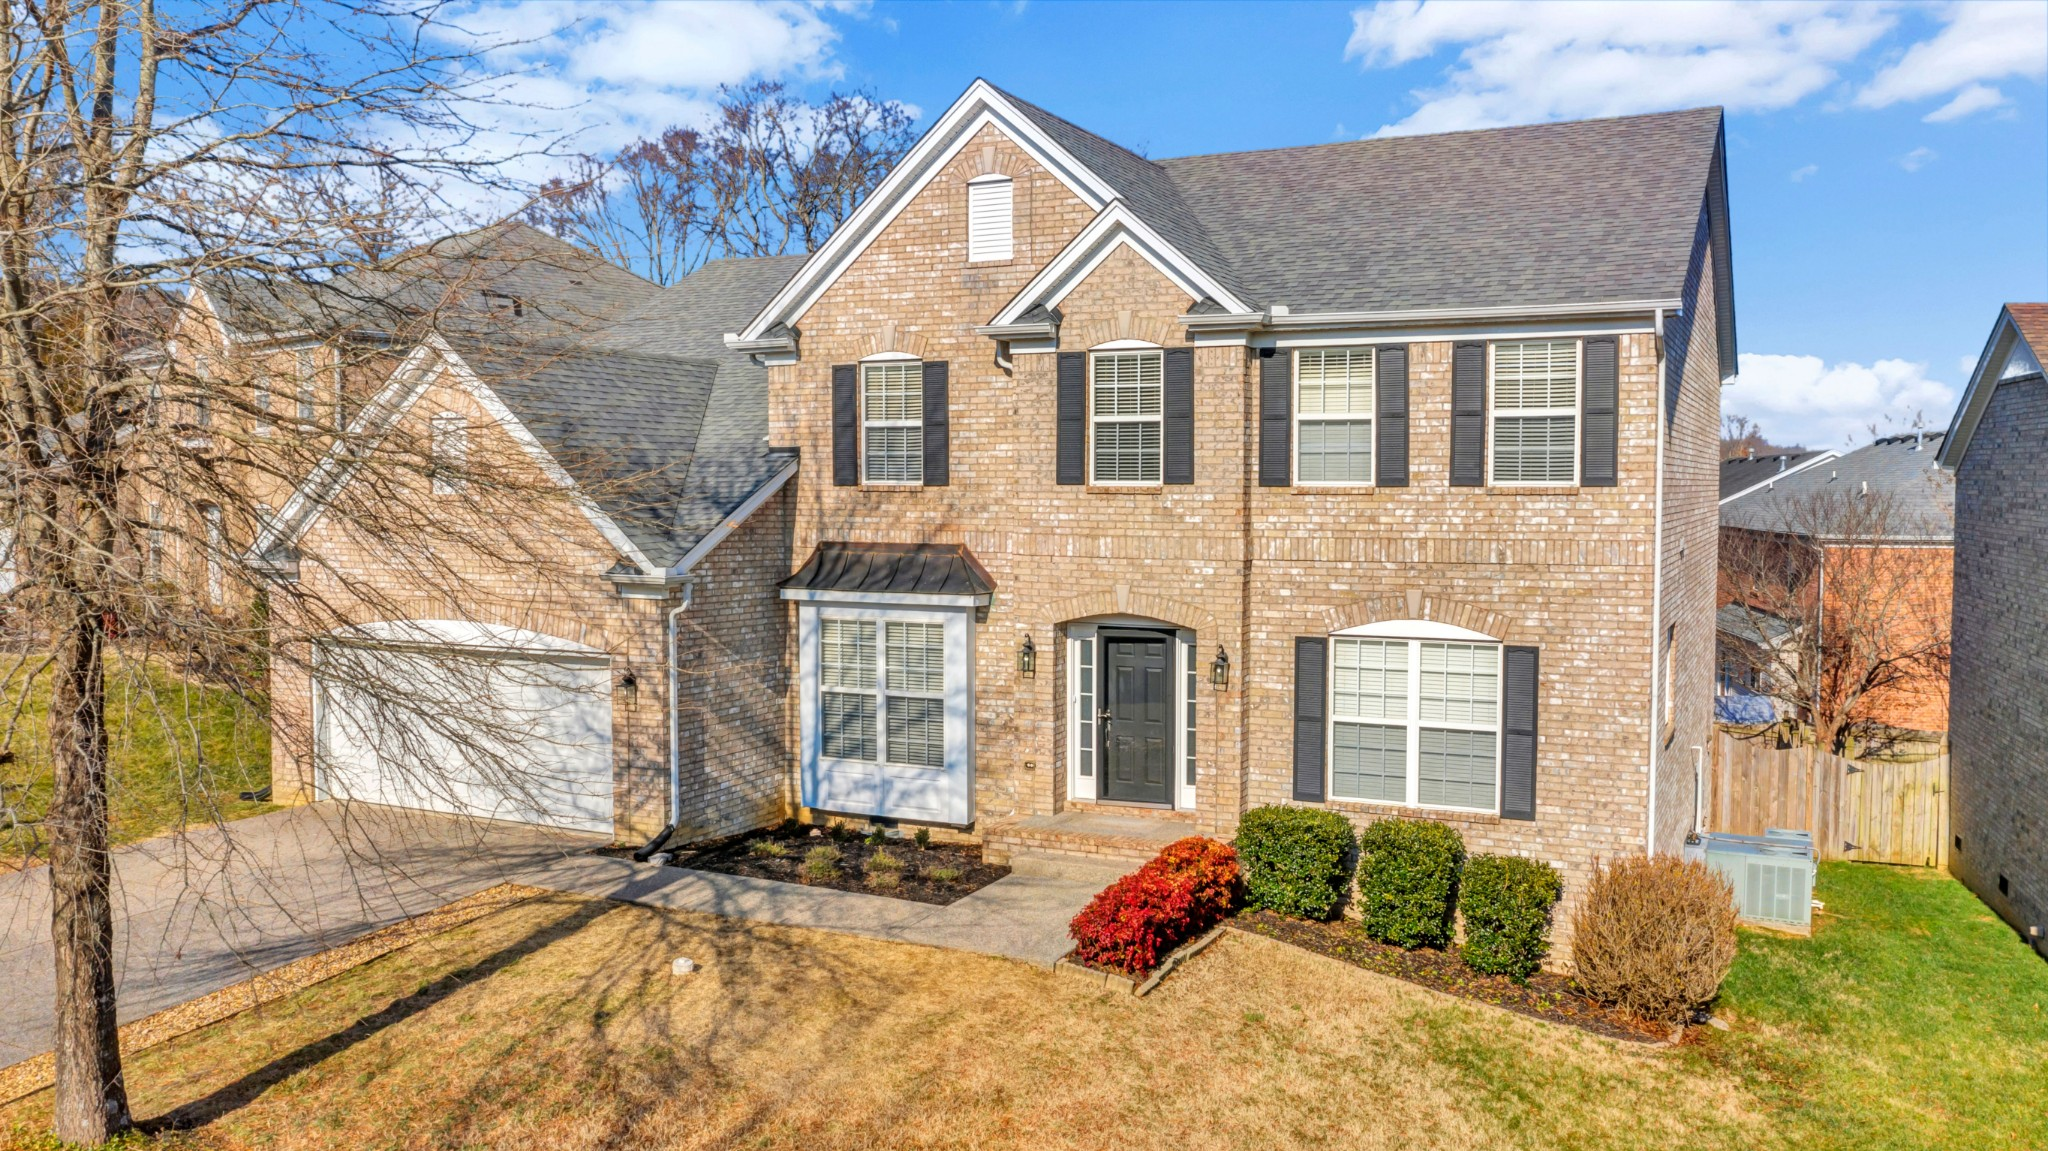 No showings until Open House Sunday 2-4 pm.  Fabulous Home located in Culdesac with Fenced Back Yard. Two Story Great Room lined with Windows for Natural Light! Gourmet Kitchen, Granite, Stainless Still appliances including fridge, Master on Main, Tons of Space!  Come and See Us Sunday!